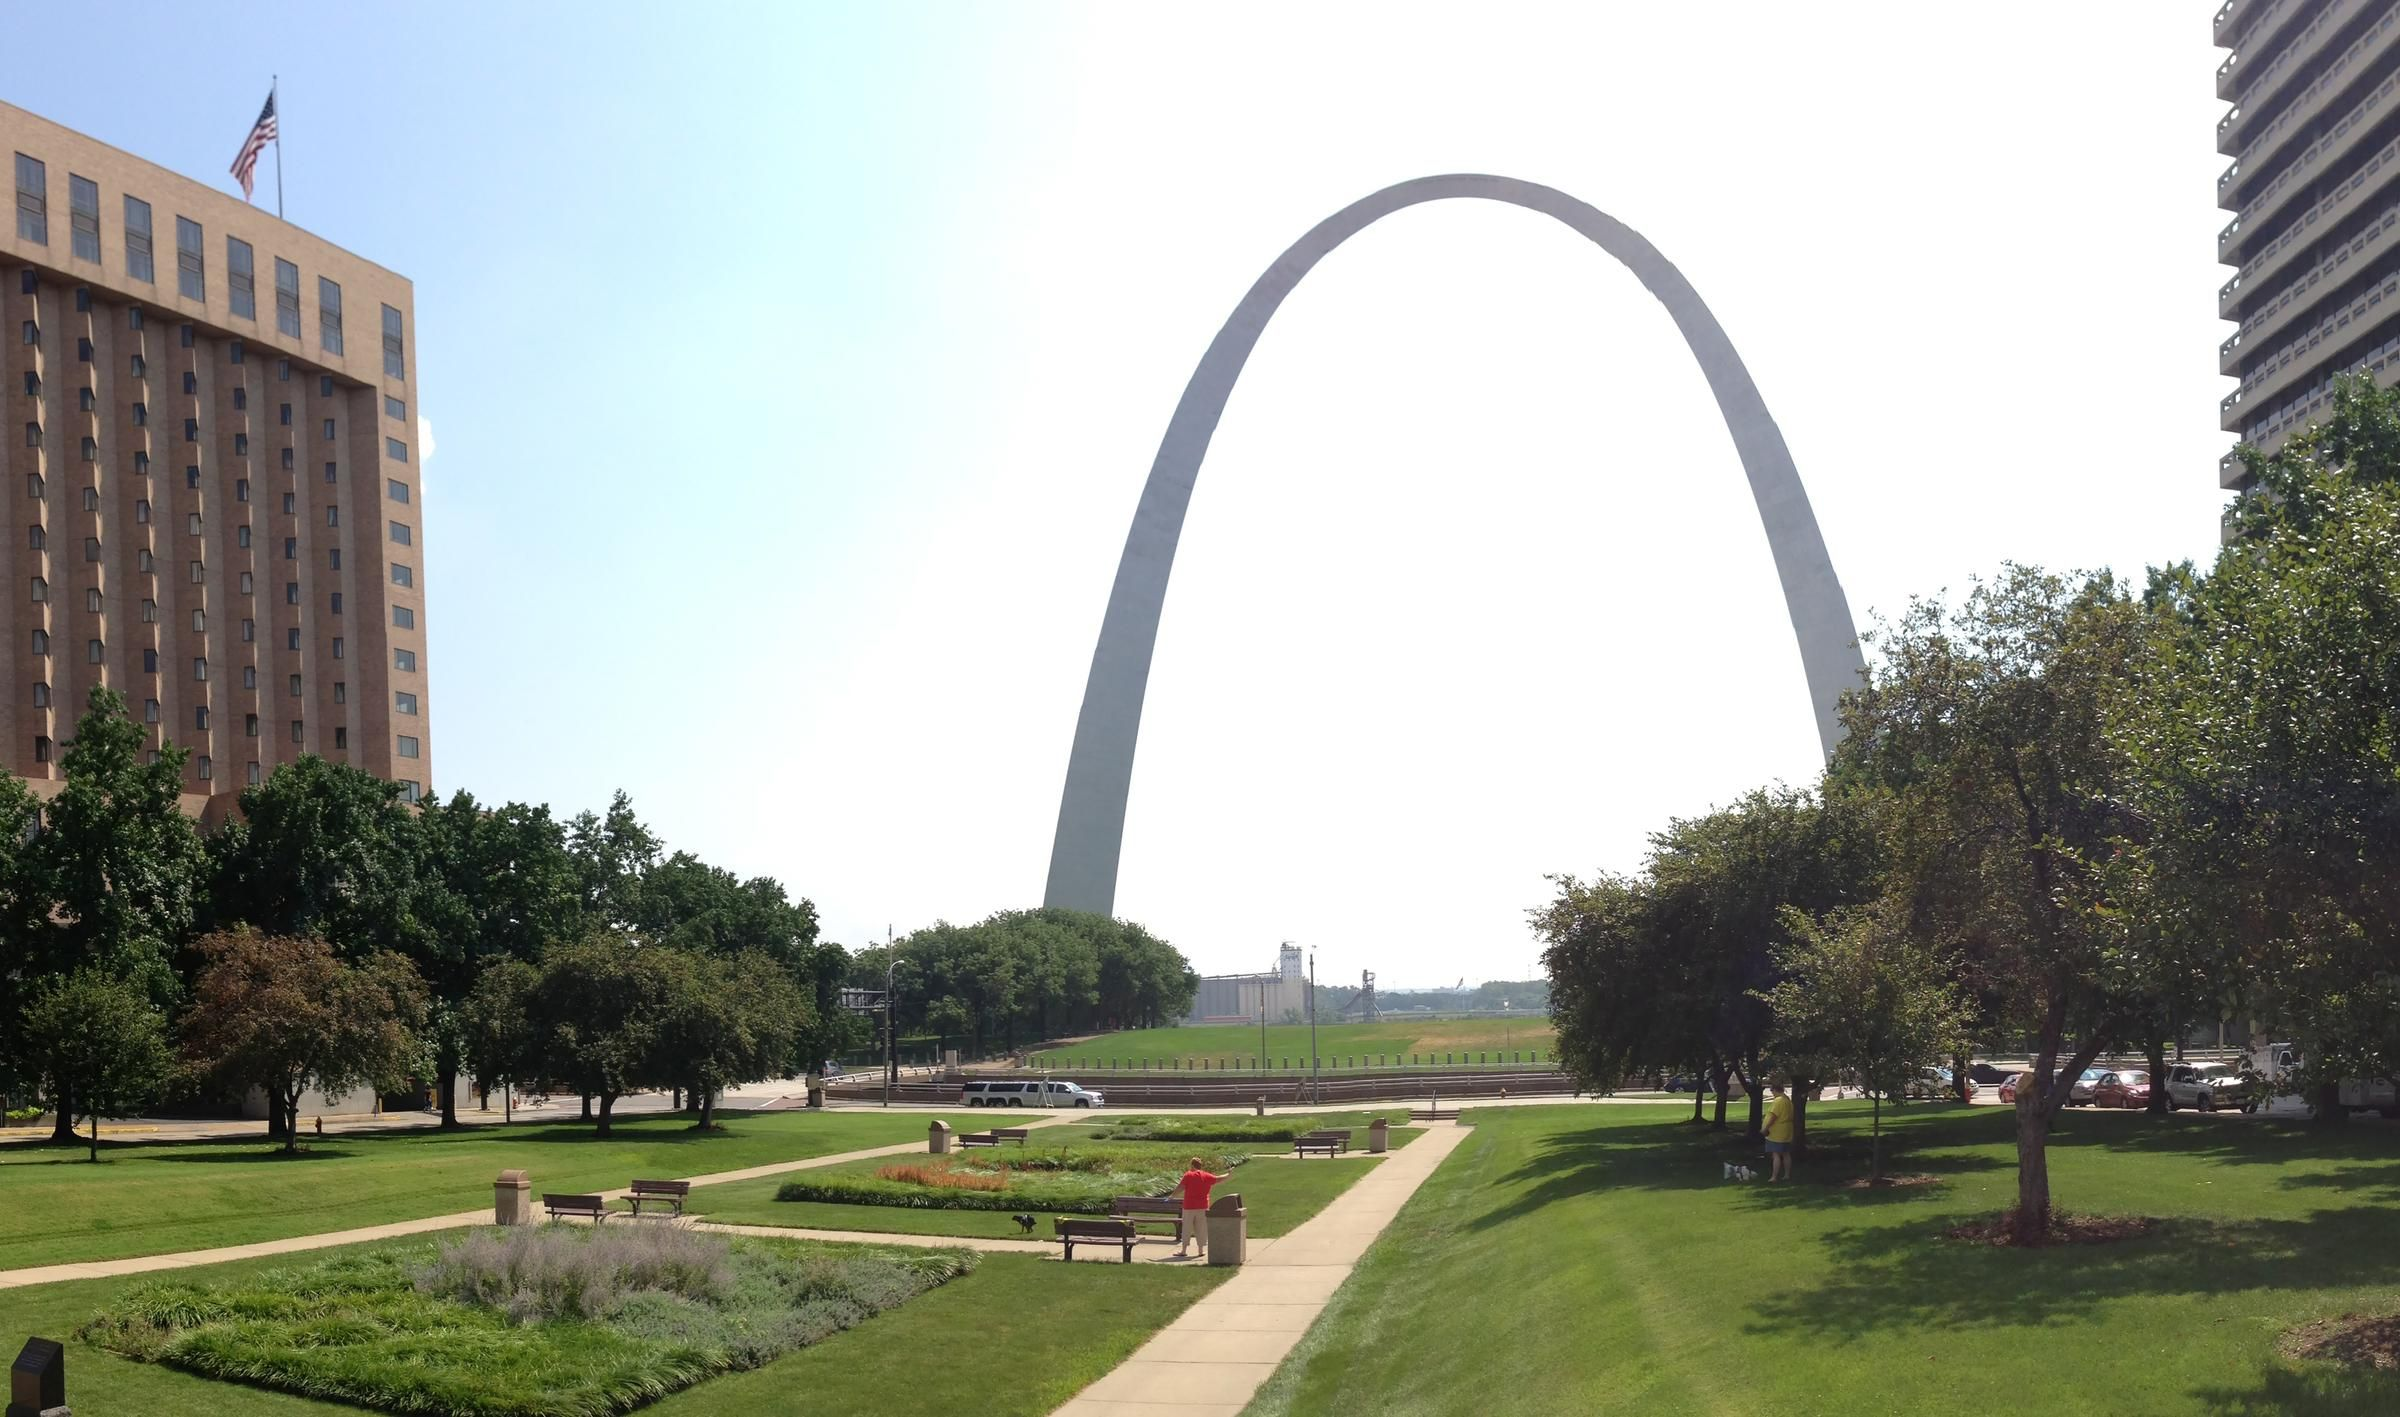 les_looking_towards_arch_before.jpg (2400×1417)